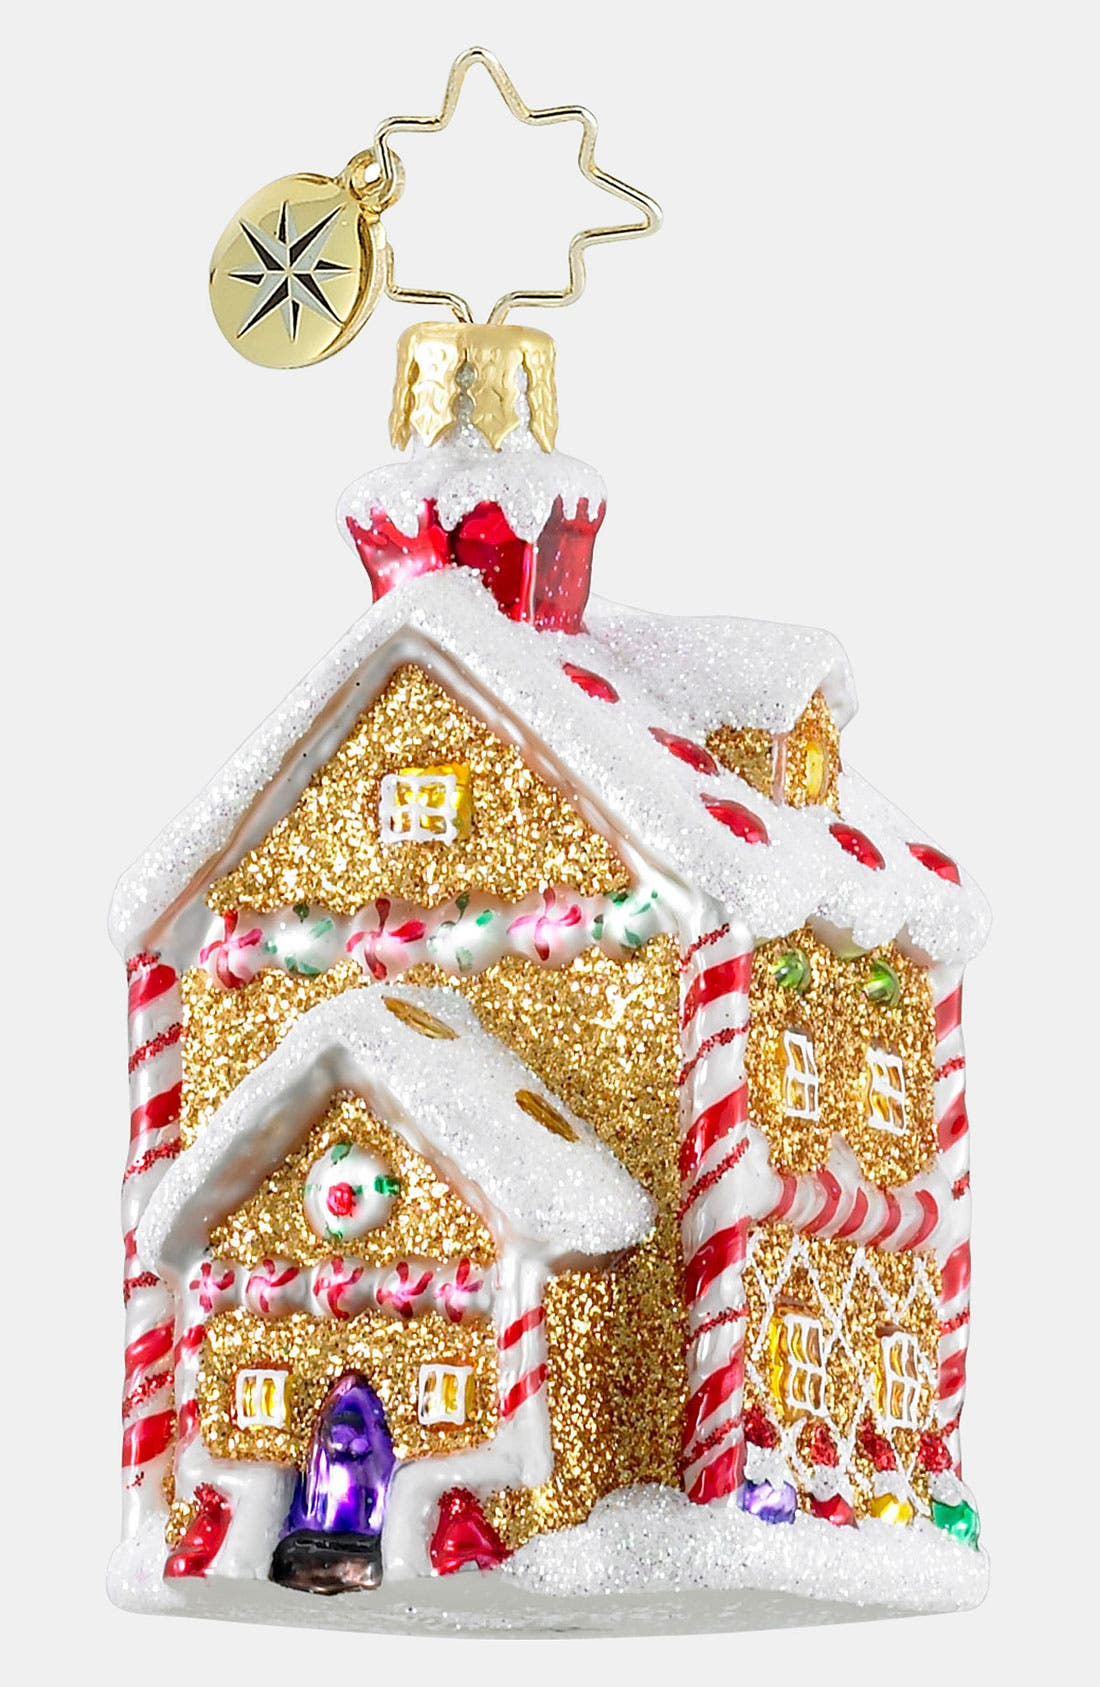 Alternate Image 1 Selected - Christopher Radko 'House of Sweets' Ornament